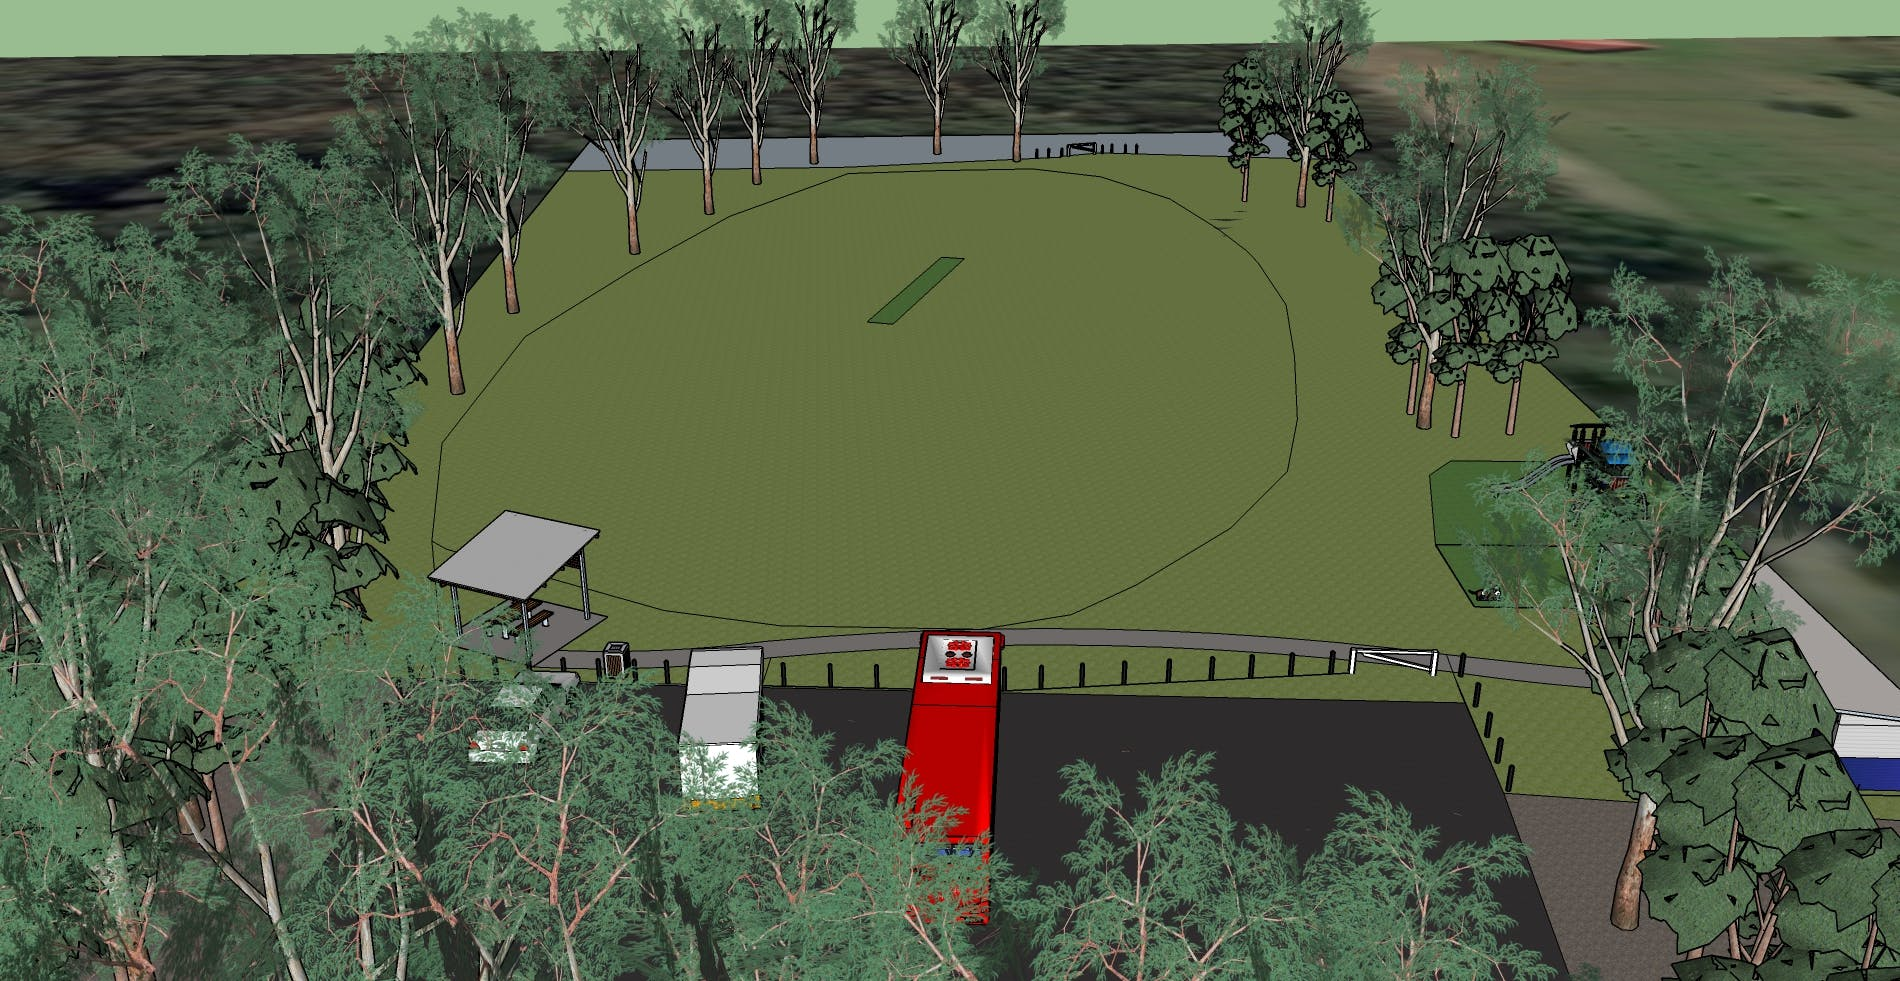 Bilpin Park Draft Provision of Works - View 2